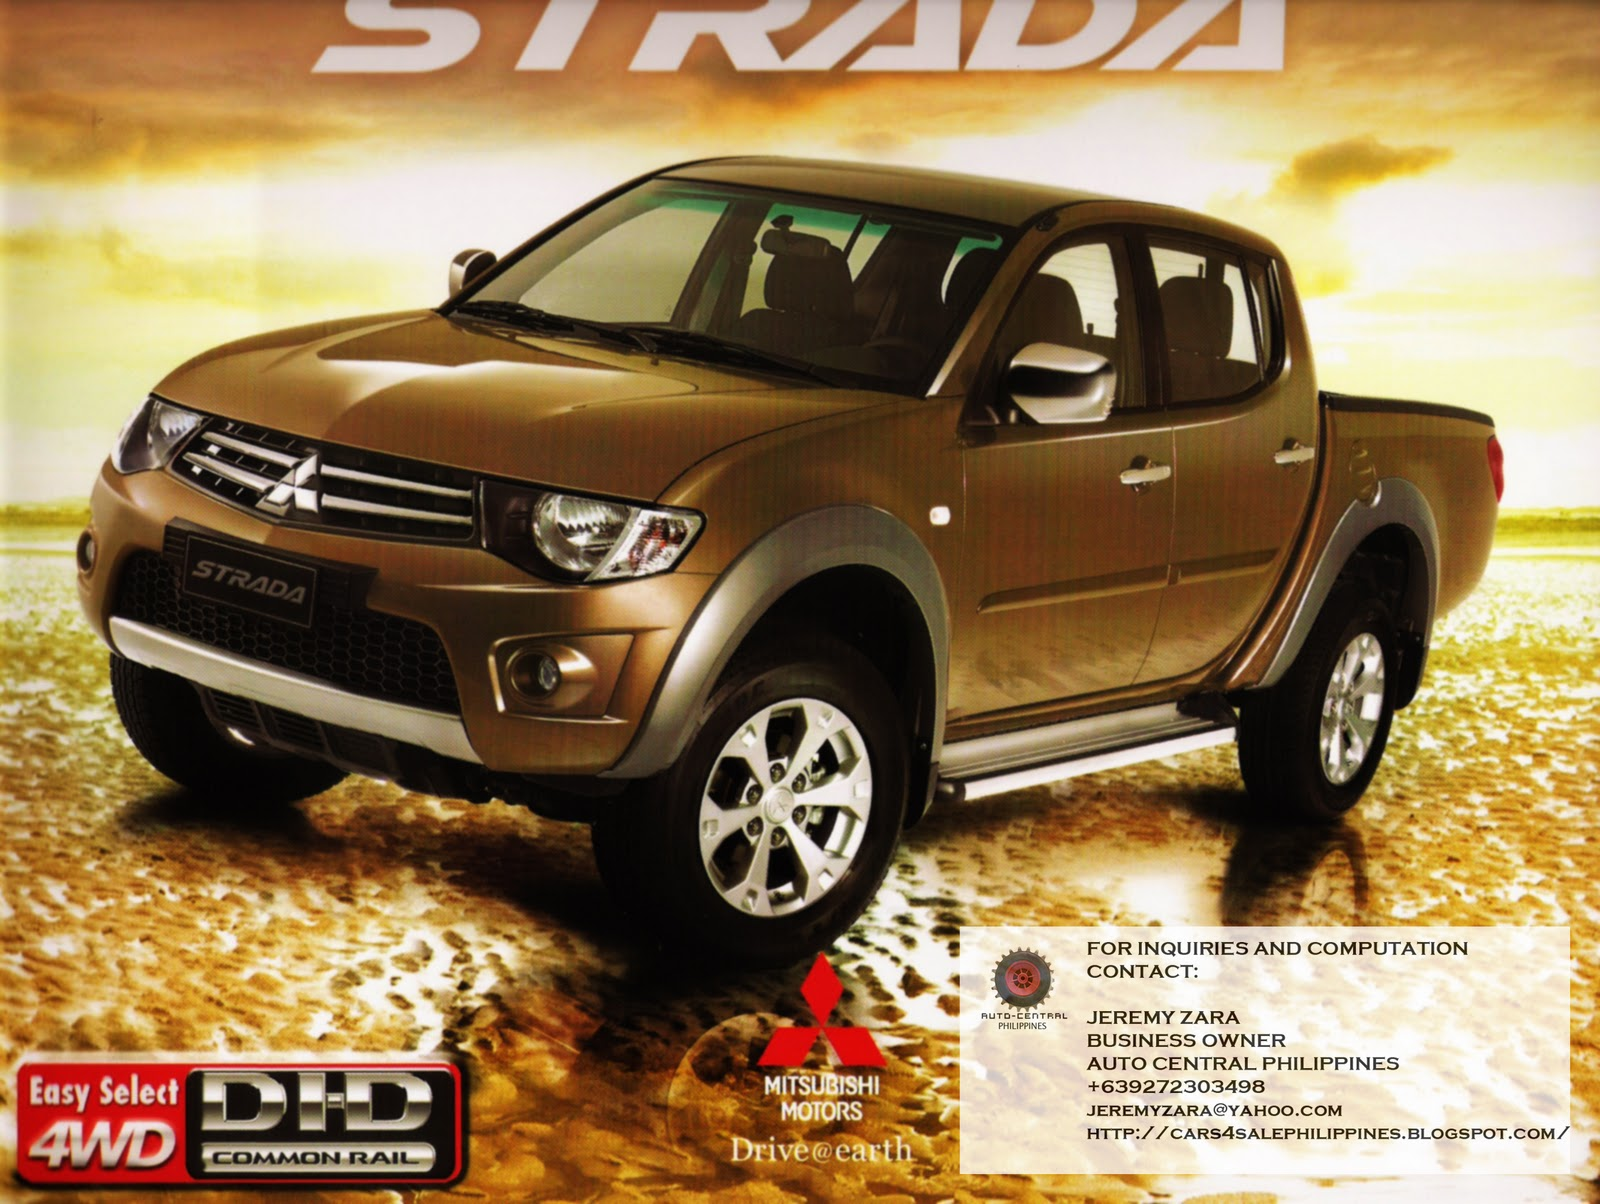 Jt Auto Sales >> Brand New Cars for Sale: BRAND NEW MITSUBISHI STRADA FOR SALE